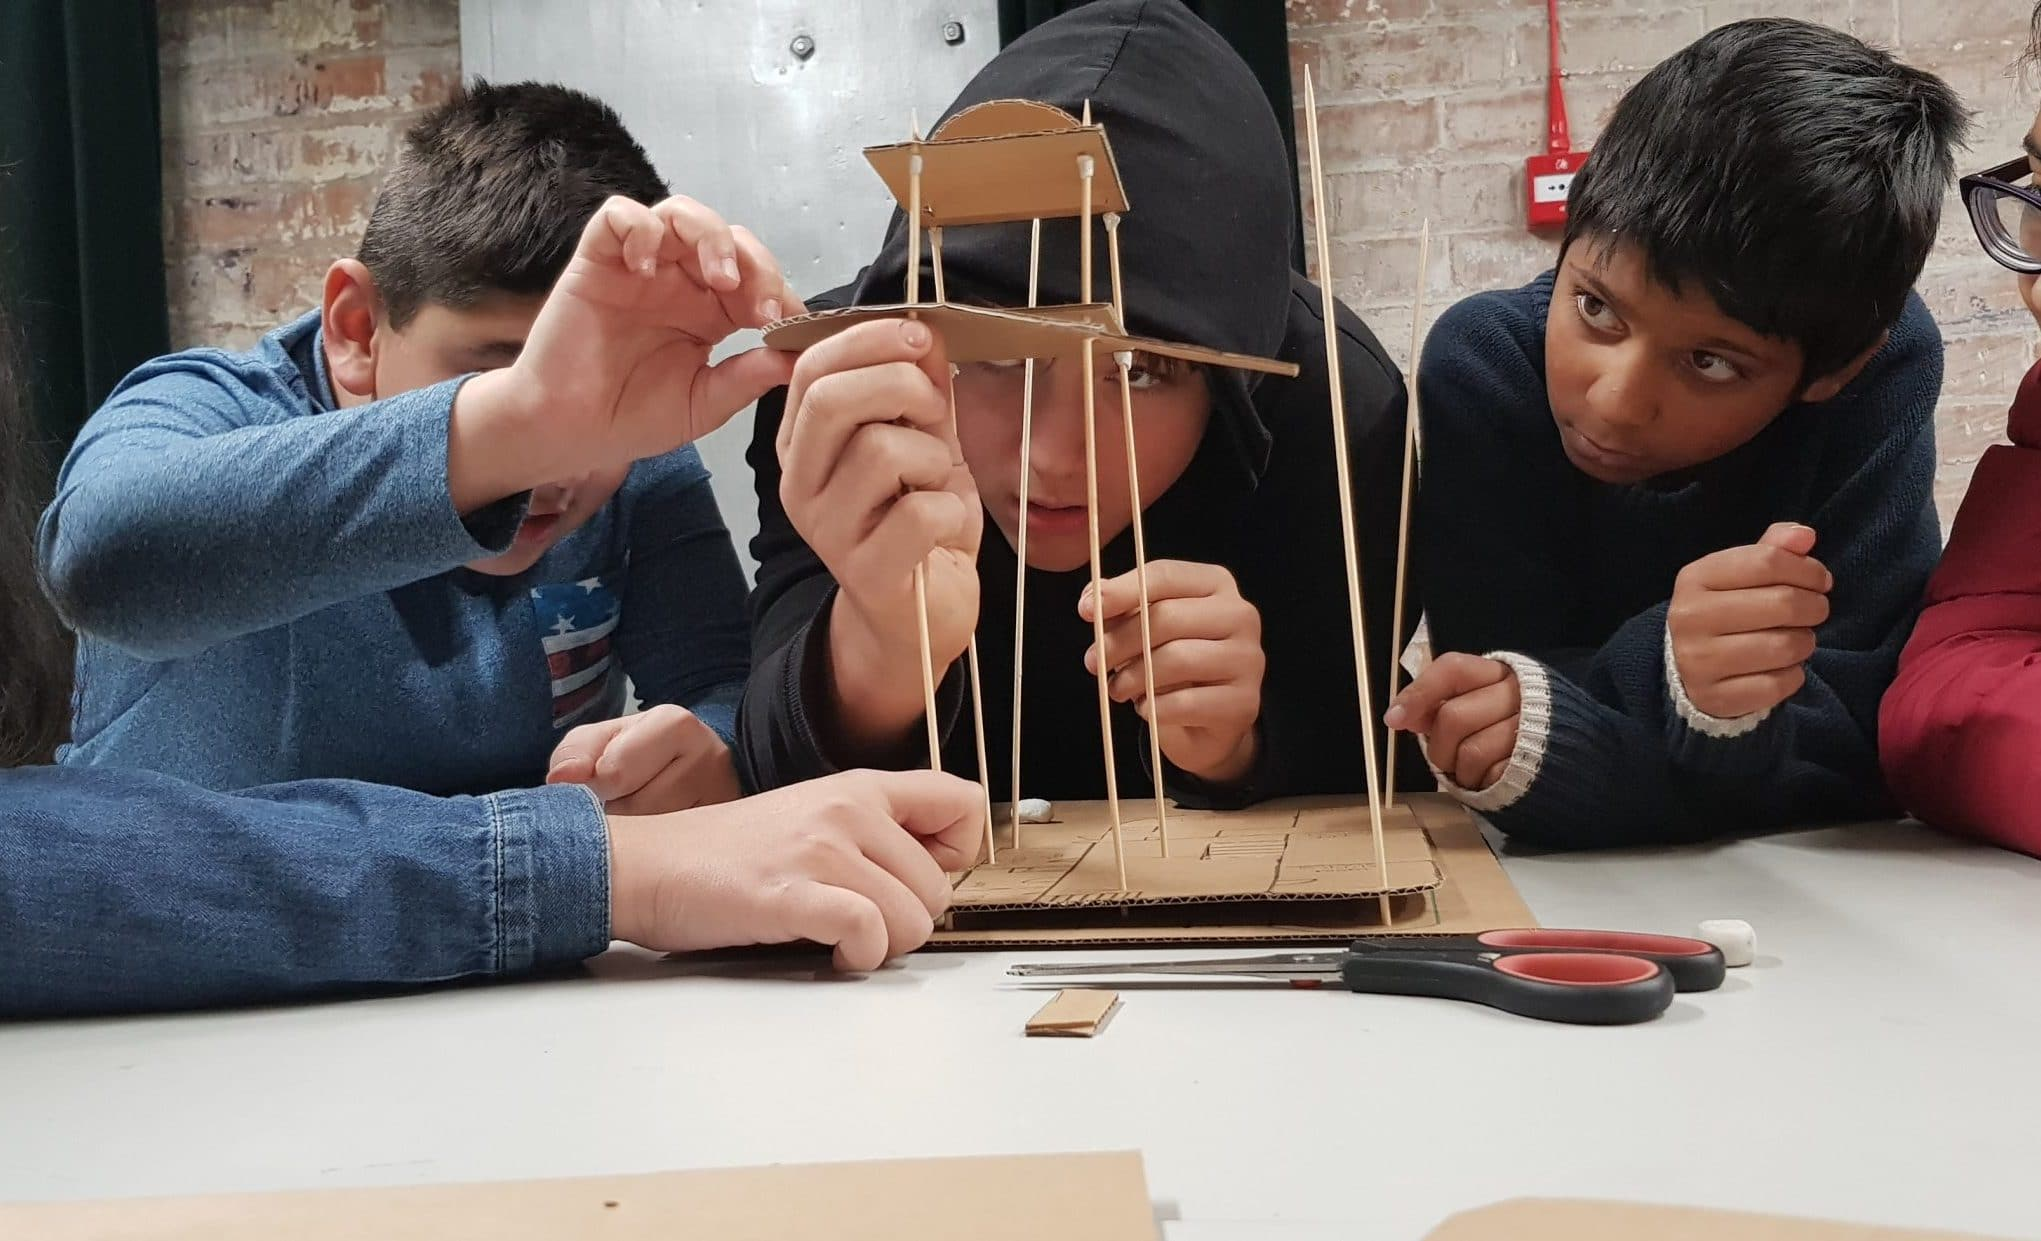 Five children sit around a table, focusing on artwork in front of them made out of wooden skewers and cardboard.